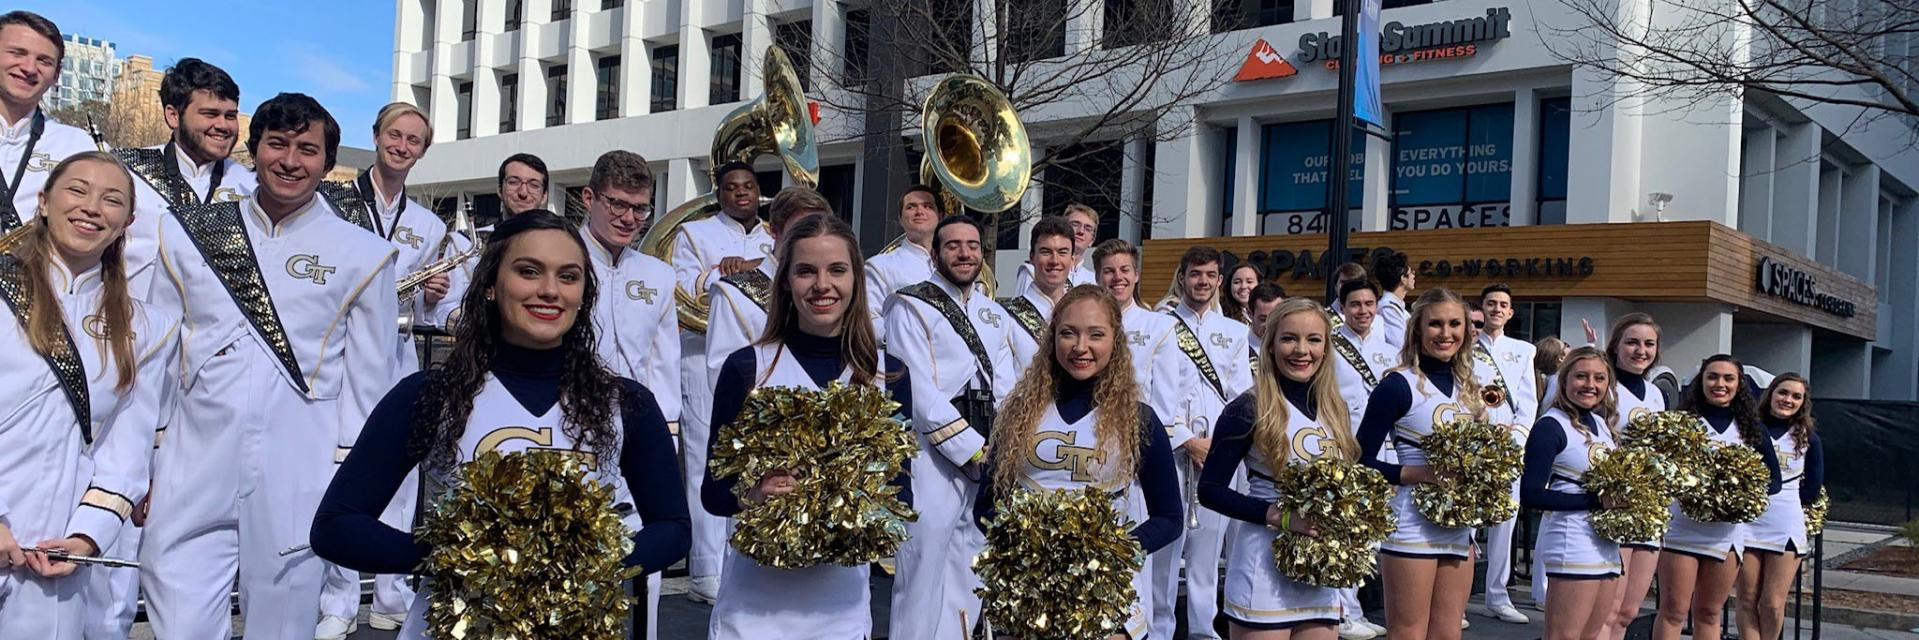 The Pep Band before a performance at the Super Bowl LIVE show.